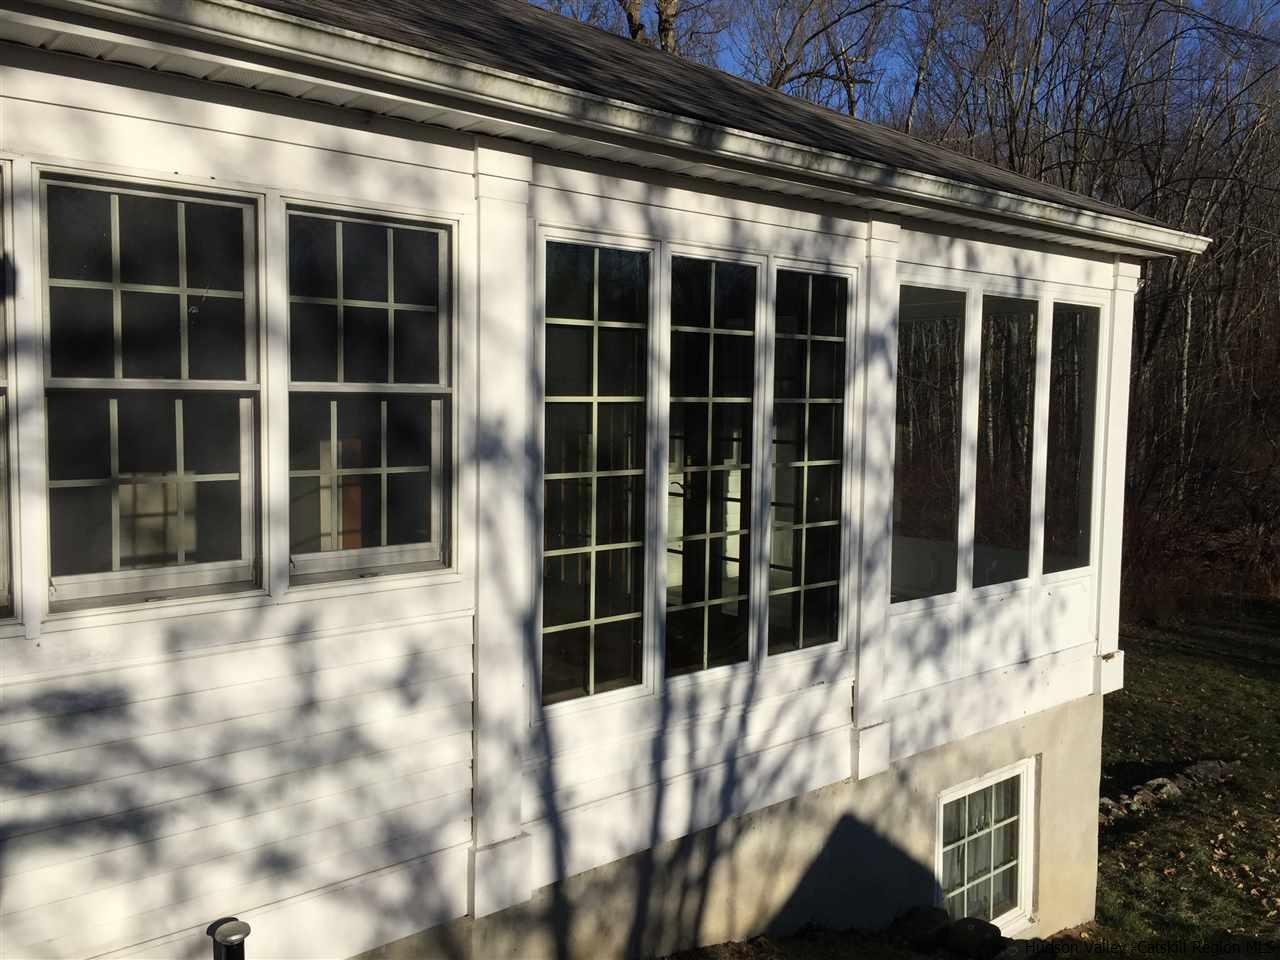 Additional photo for property listing at 1333 Route 208 1333 Route 208 Wallkill, New York 12589 United States